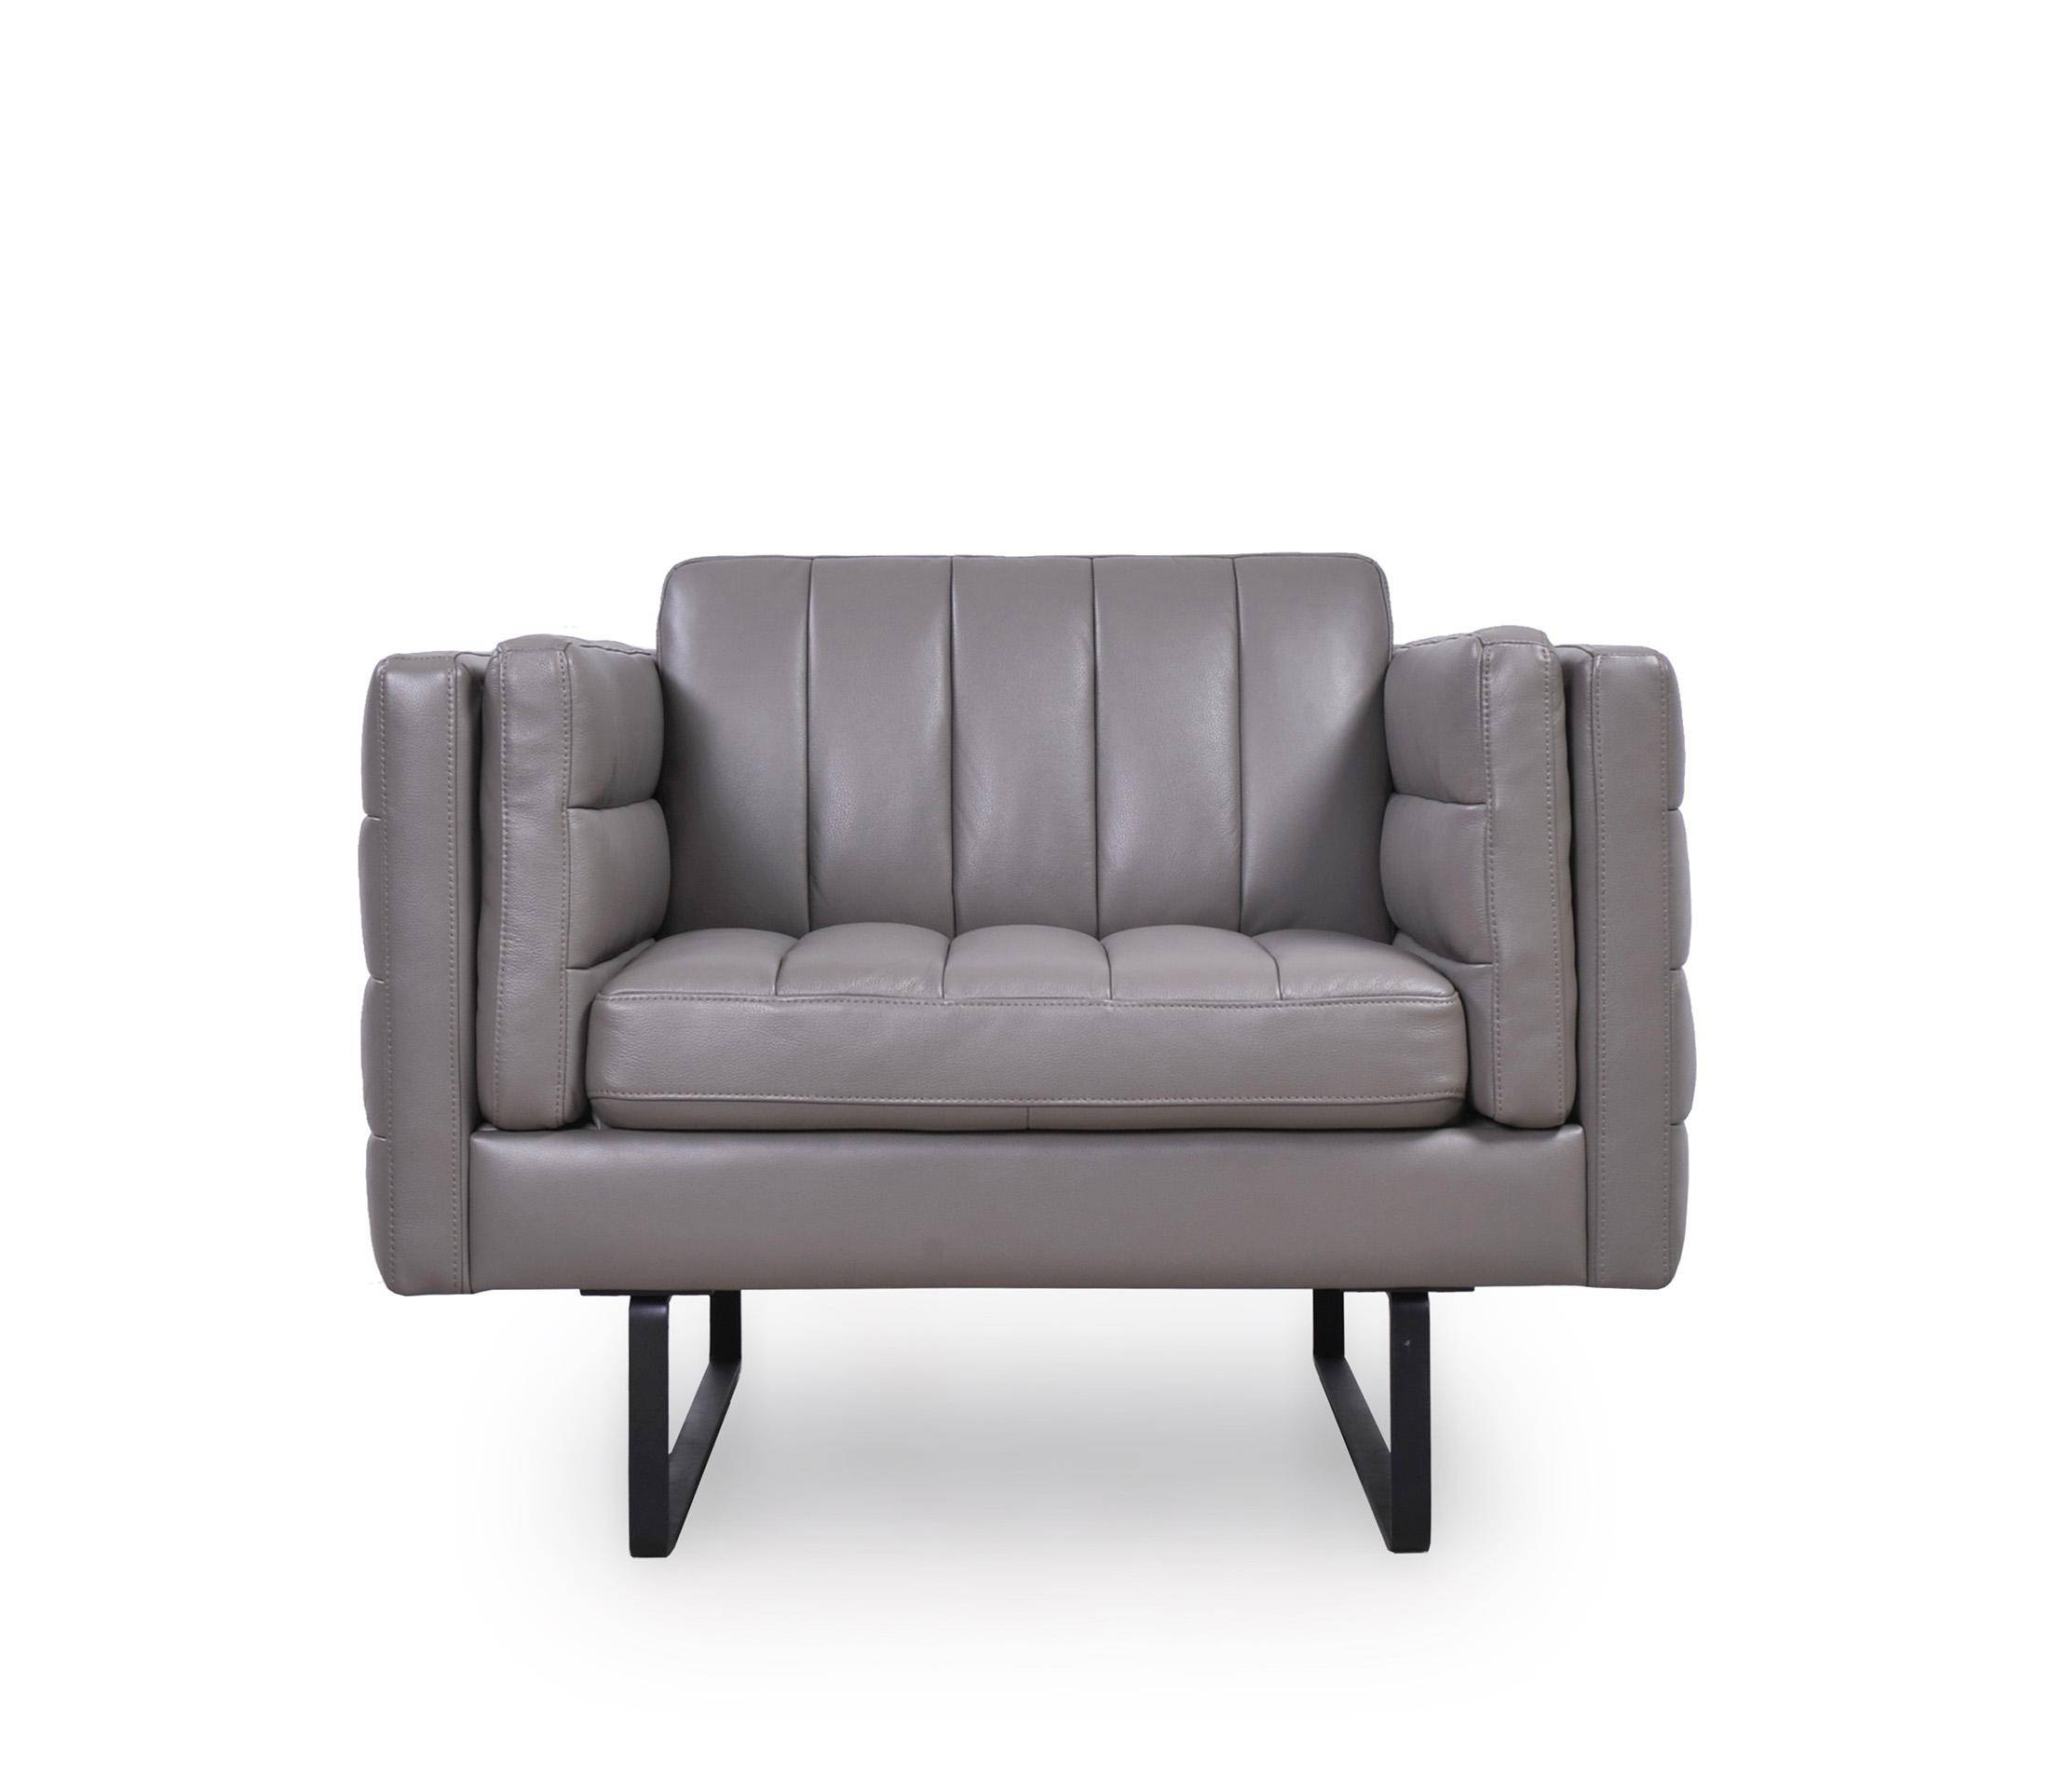 Buy Moroni Orson 582 Sofa Armchair Set 2 Pcs In Gray, Top Throughout Orsen Tv Stands (View 2 of 20)